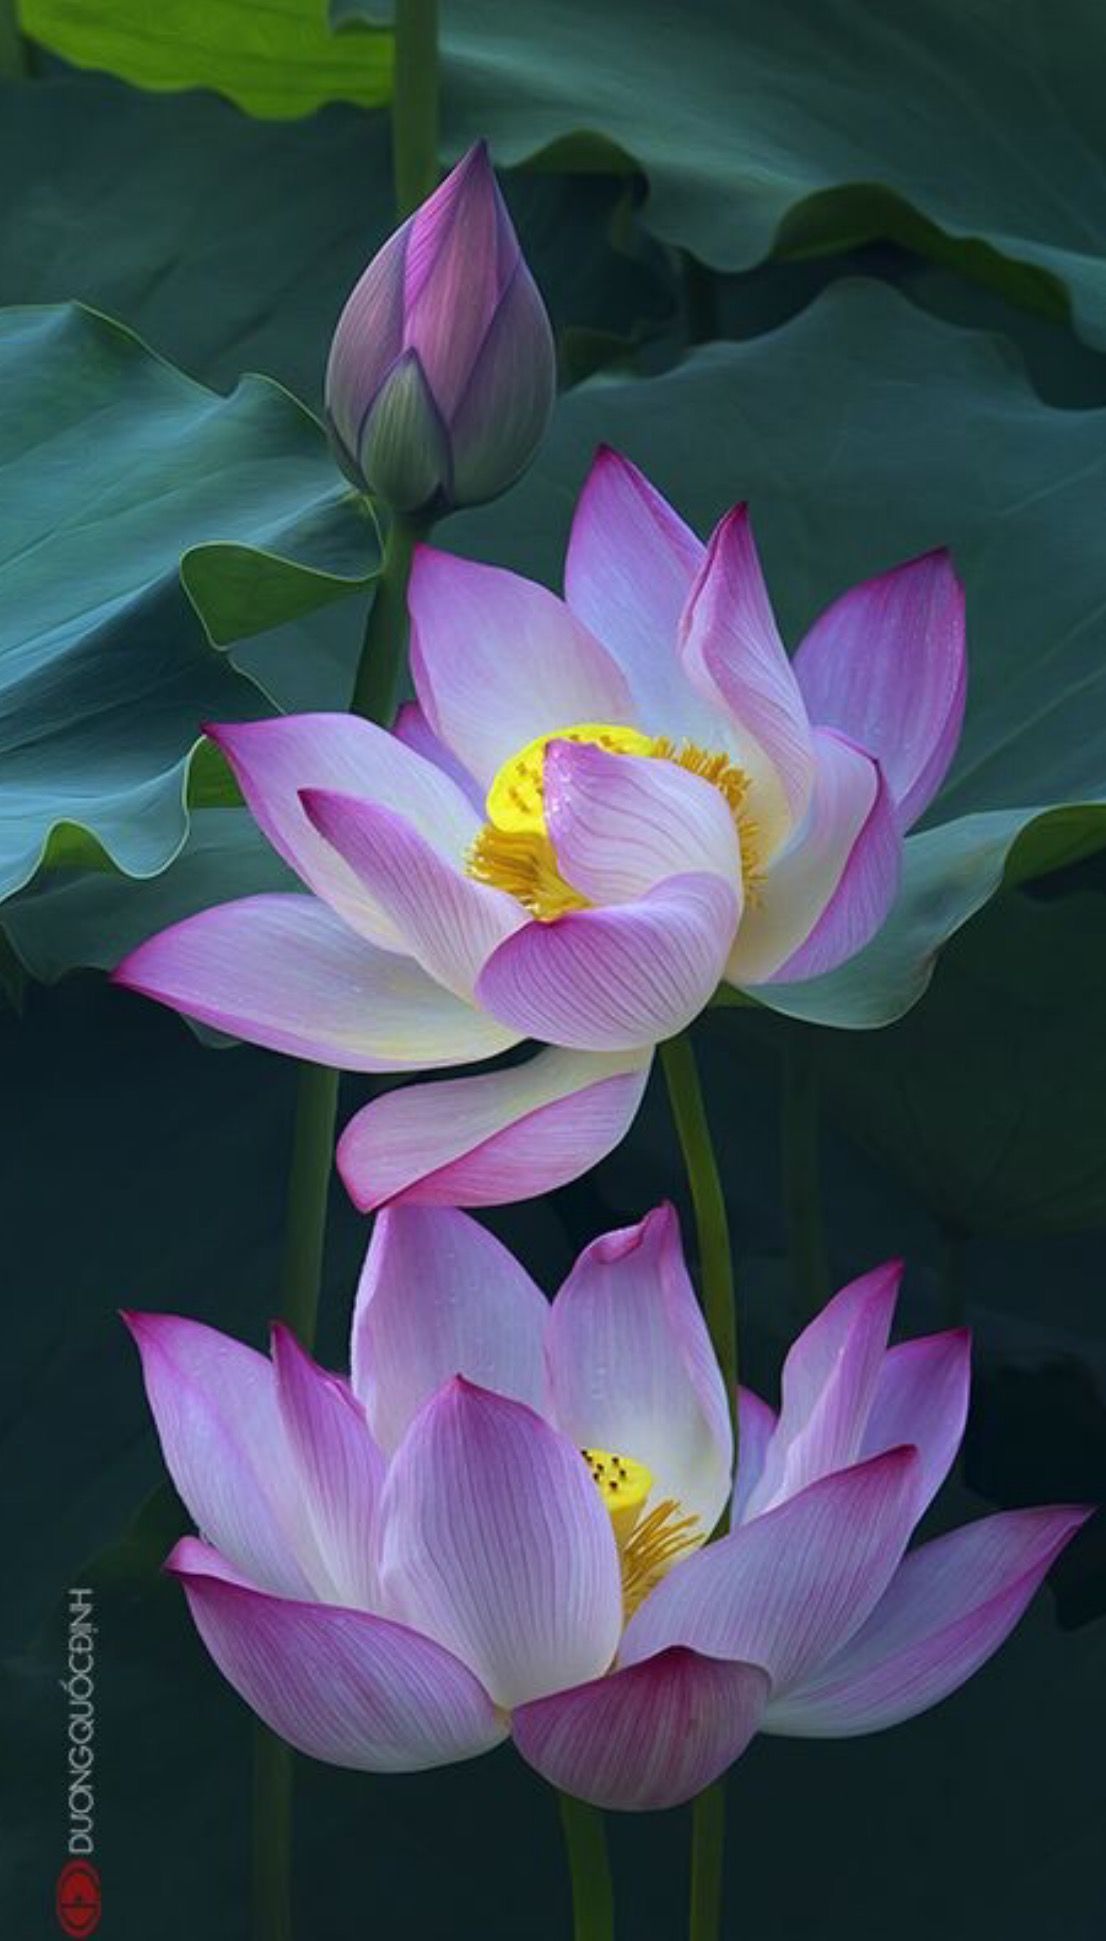 Pin by elisabelle govindin on fleurs pinterest lotus flowers heres what we found about purple flowers read up the info about purple flowers and learn more about it izmirmasajfo